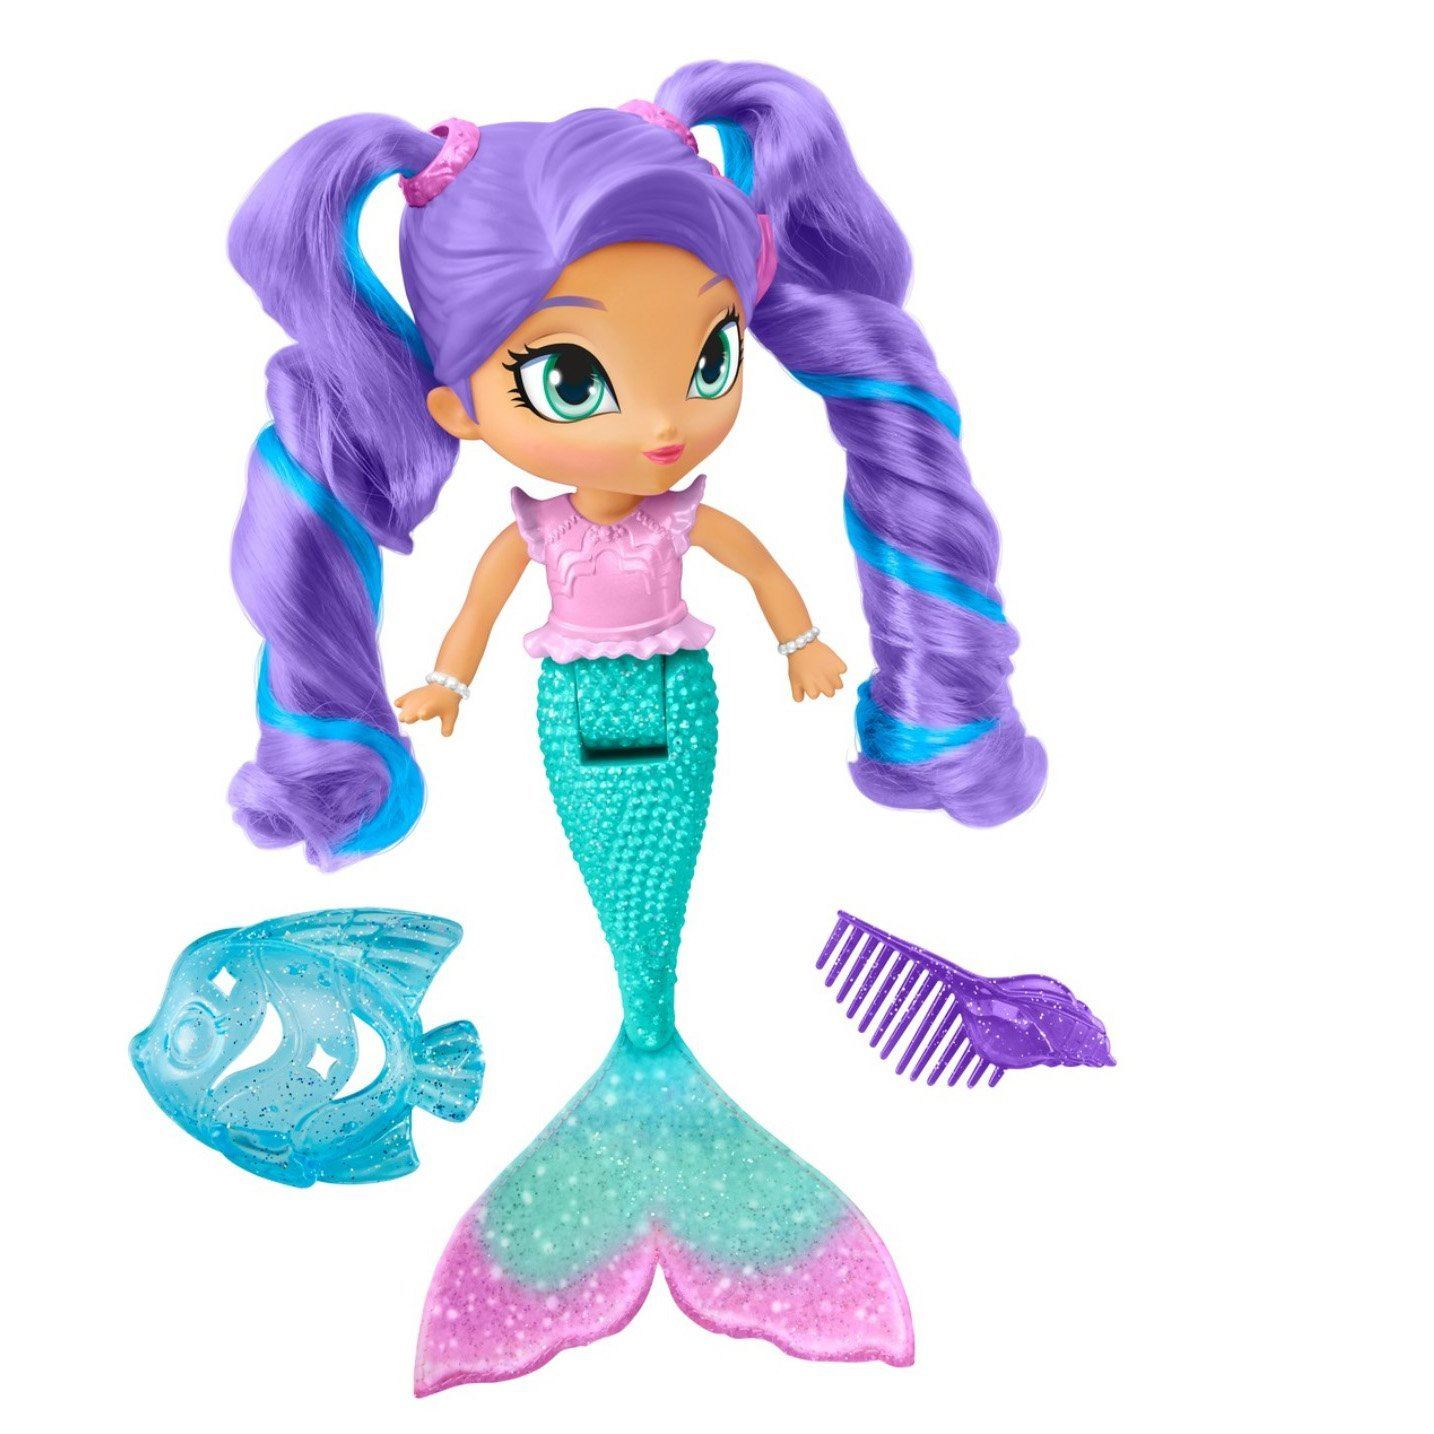 Lovee Doll Amp Toy Co : Shimmer shine magic mermaid nila bath